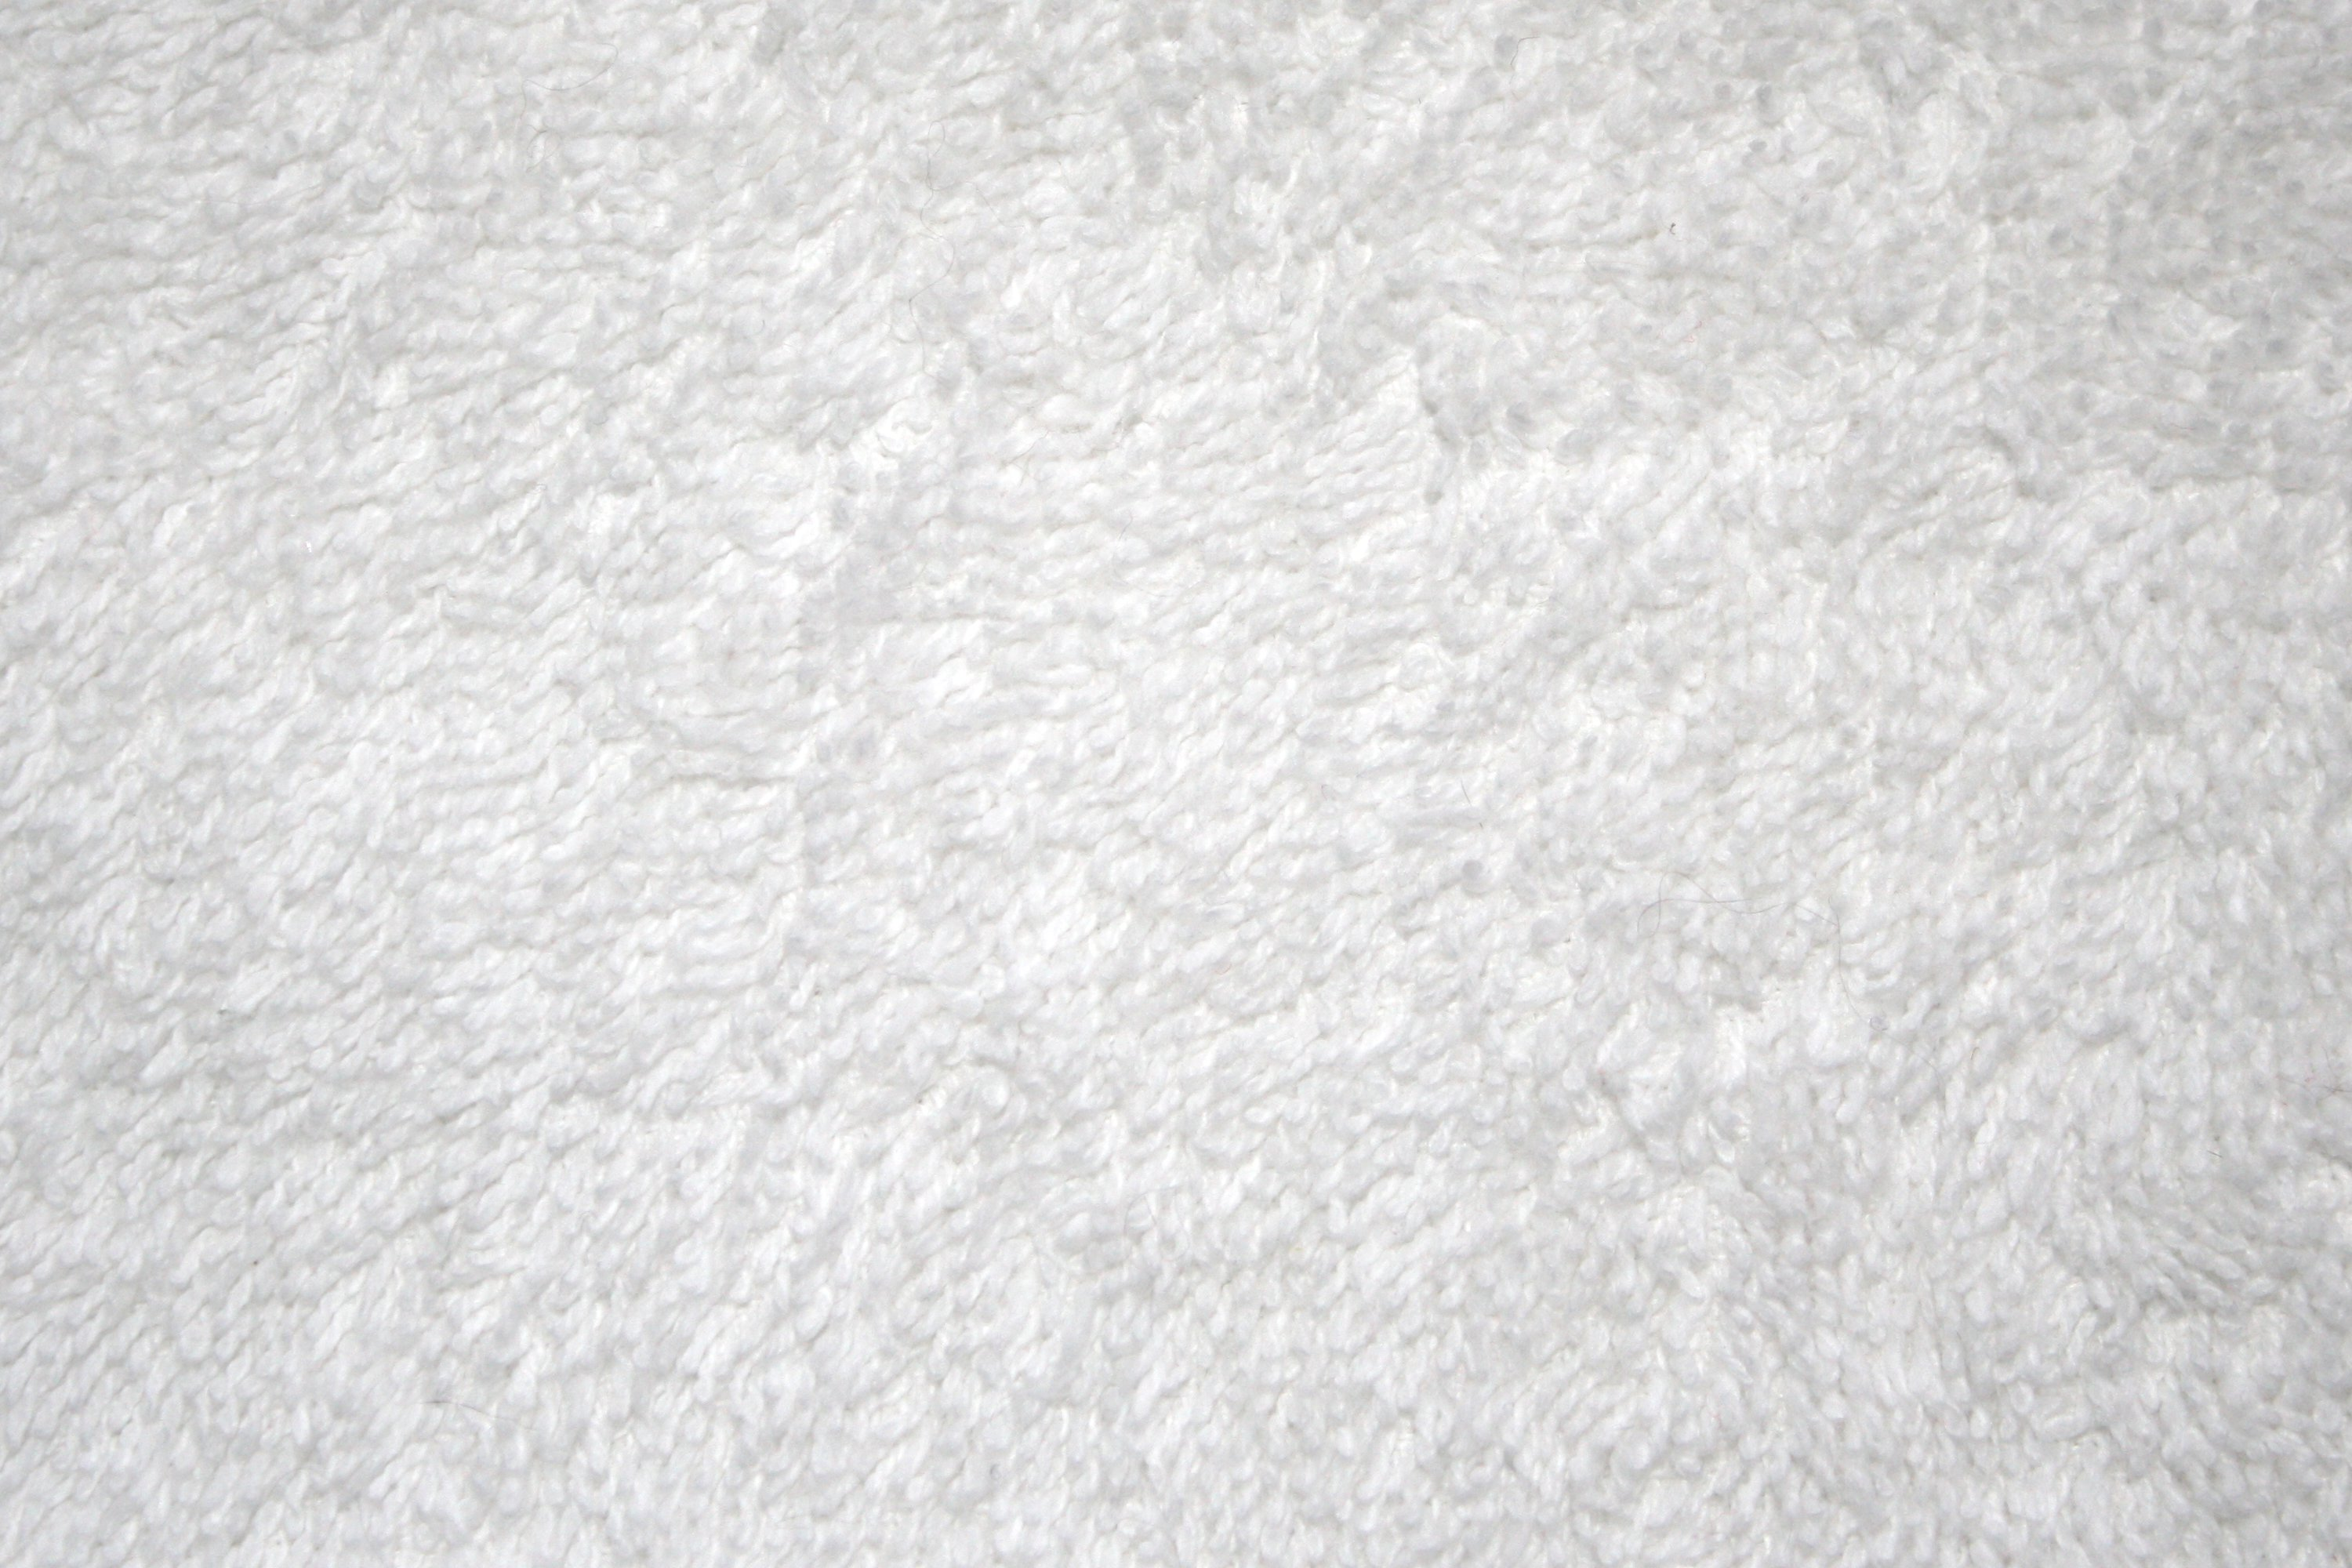 White Terry Cloth Closeup Texture Picture